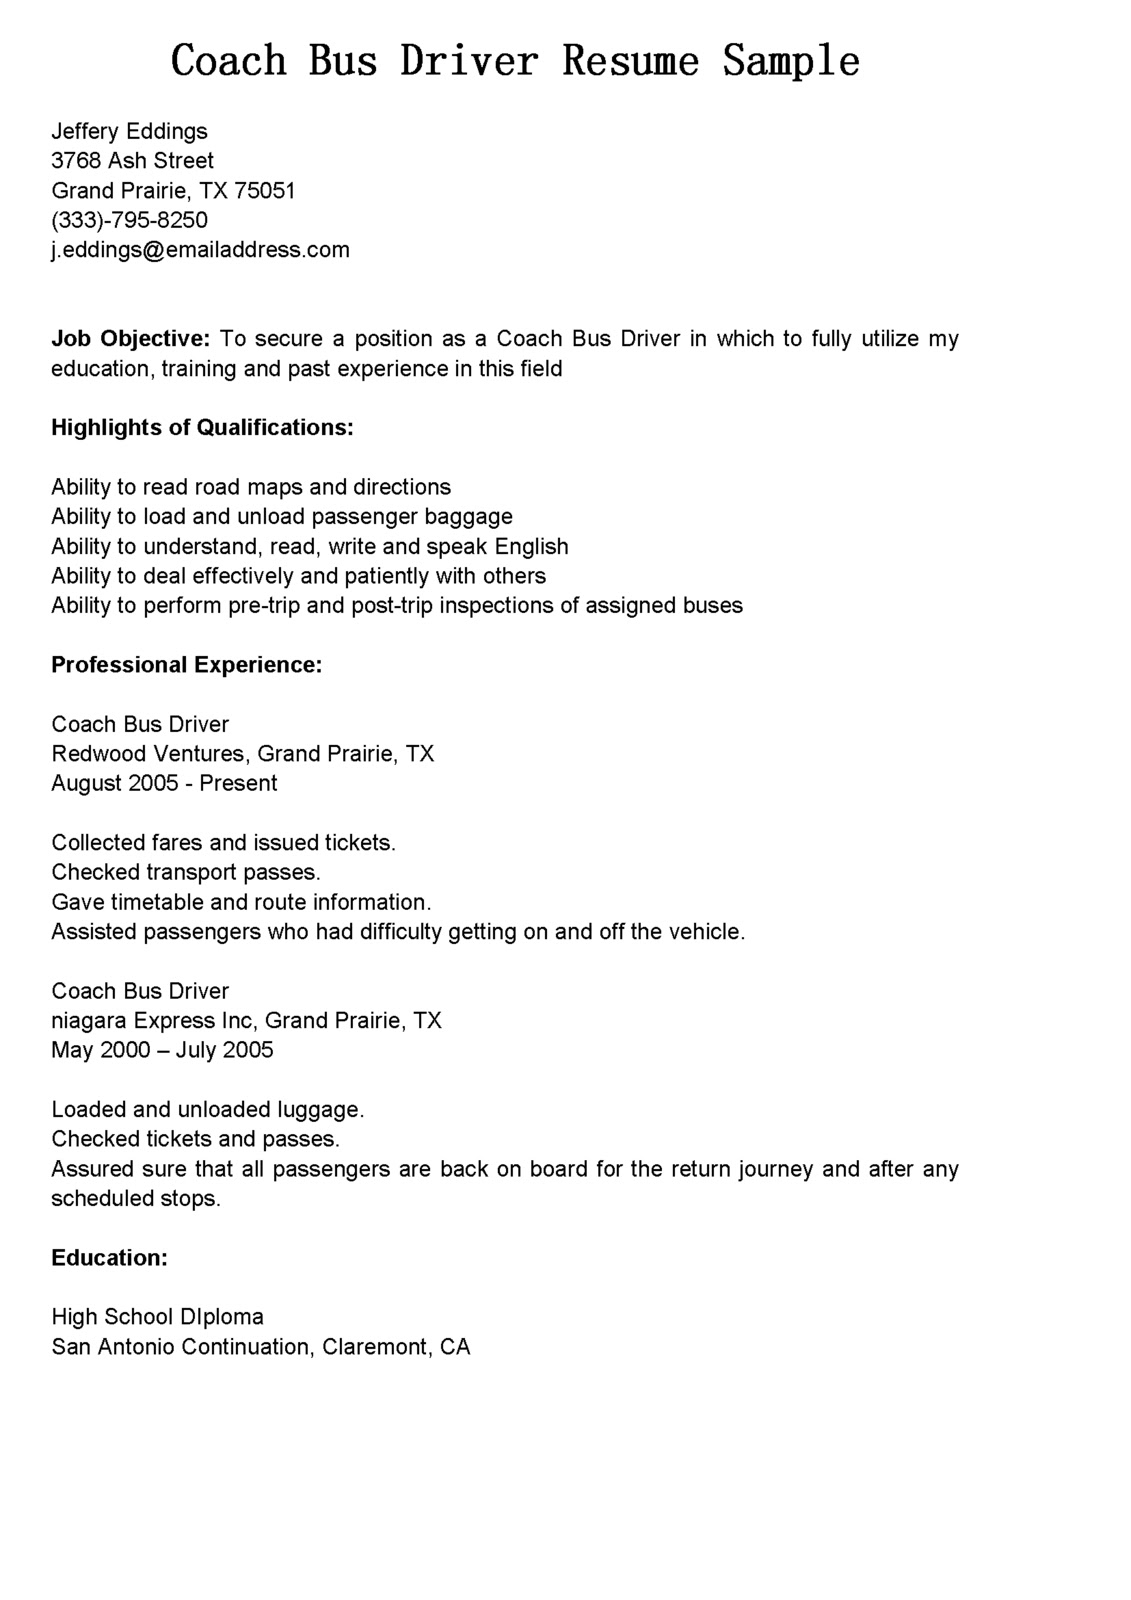 resume for driver recruiter professional resume cover letter sample resume for driver recruiter driver recruiter resume example hidden valley driver resumes coach bus driver resume